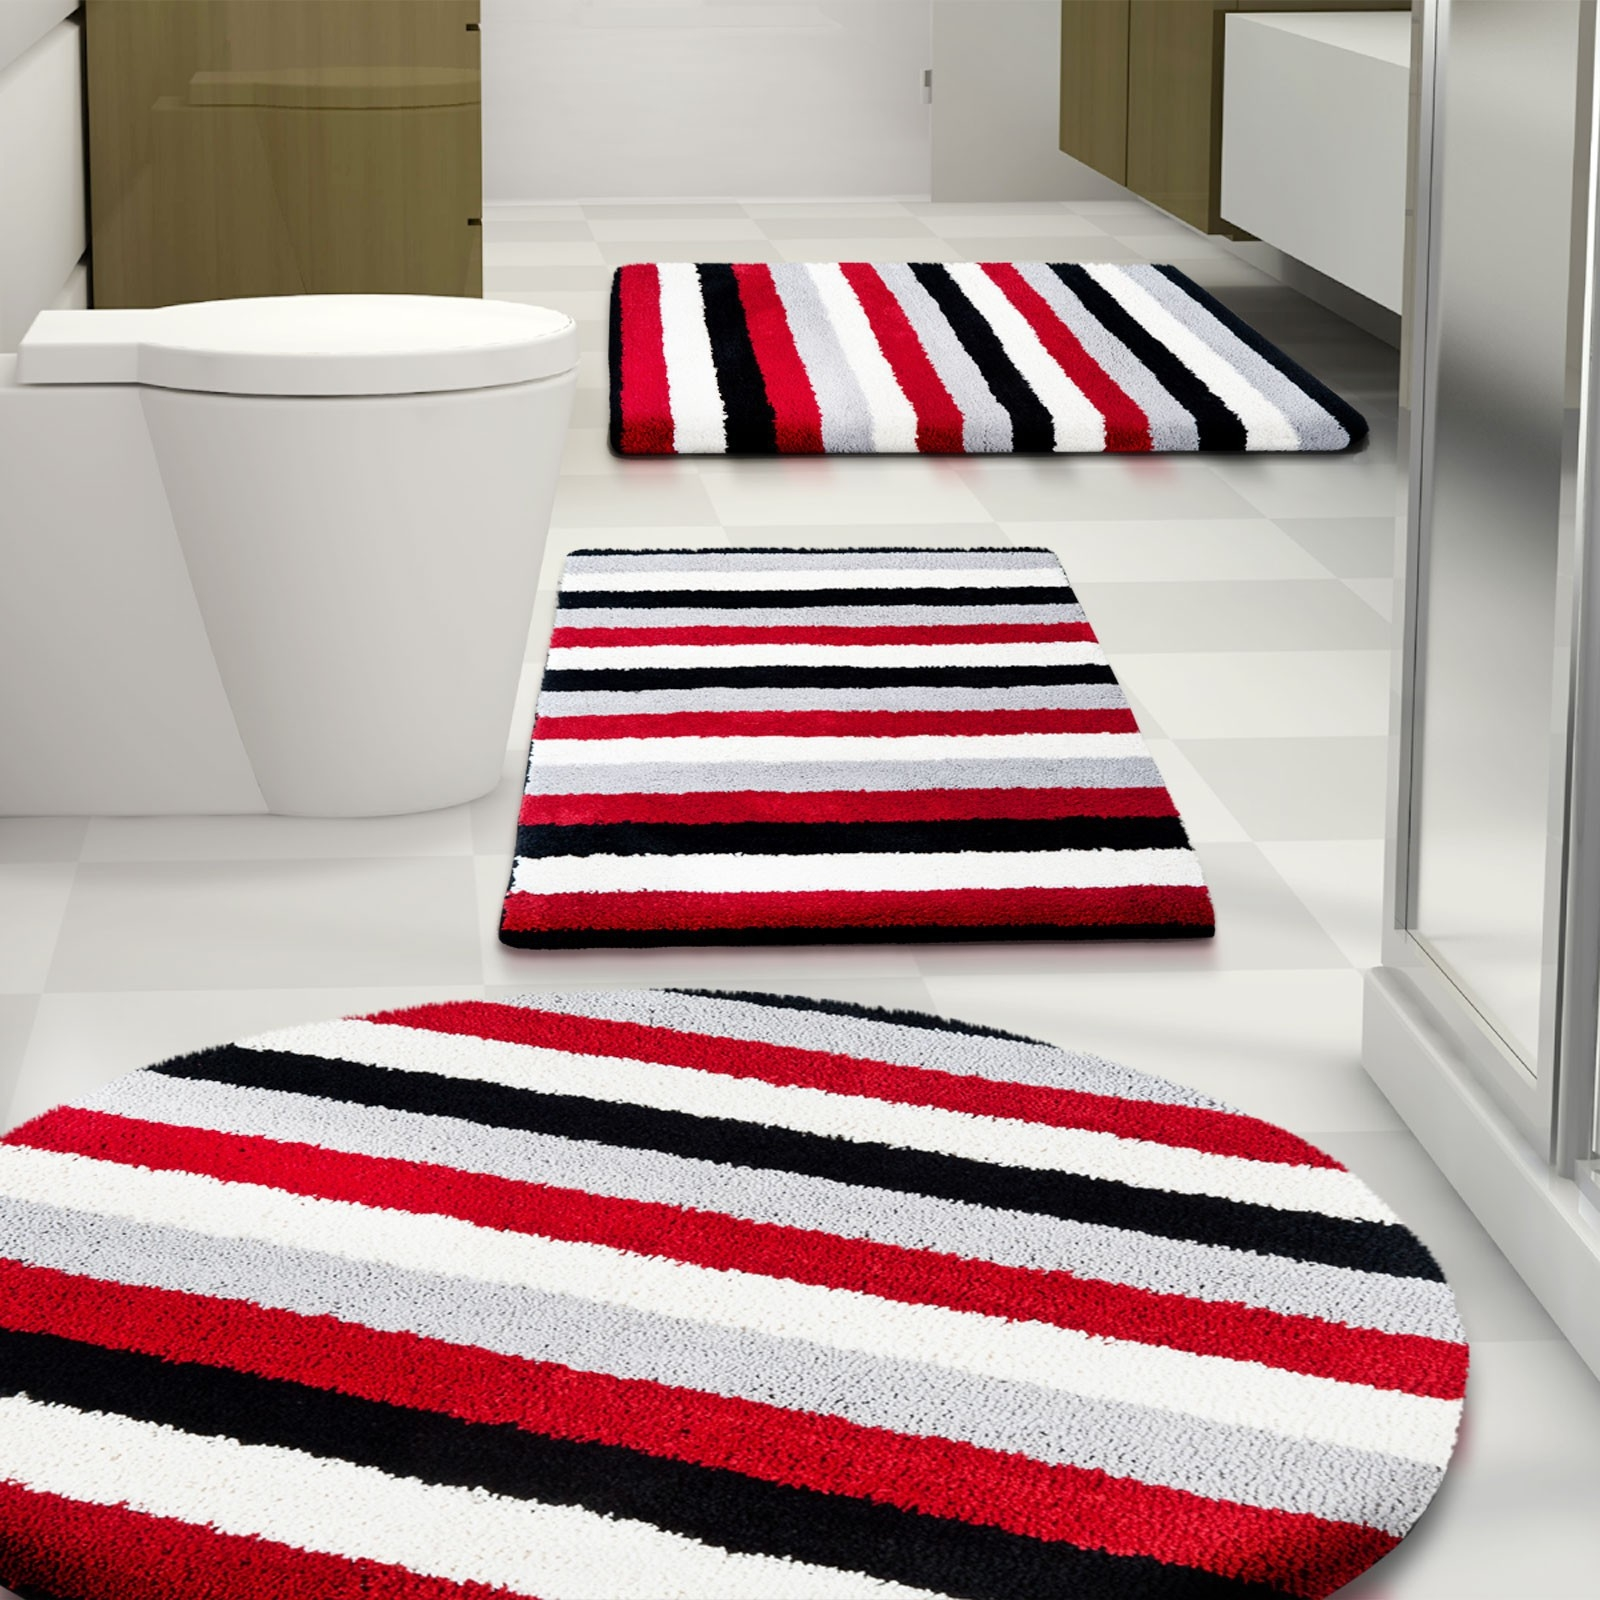 Red Bath Mats And Rugs